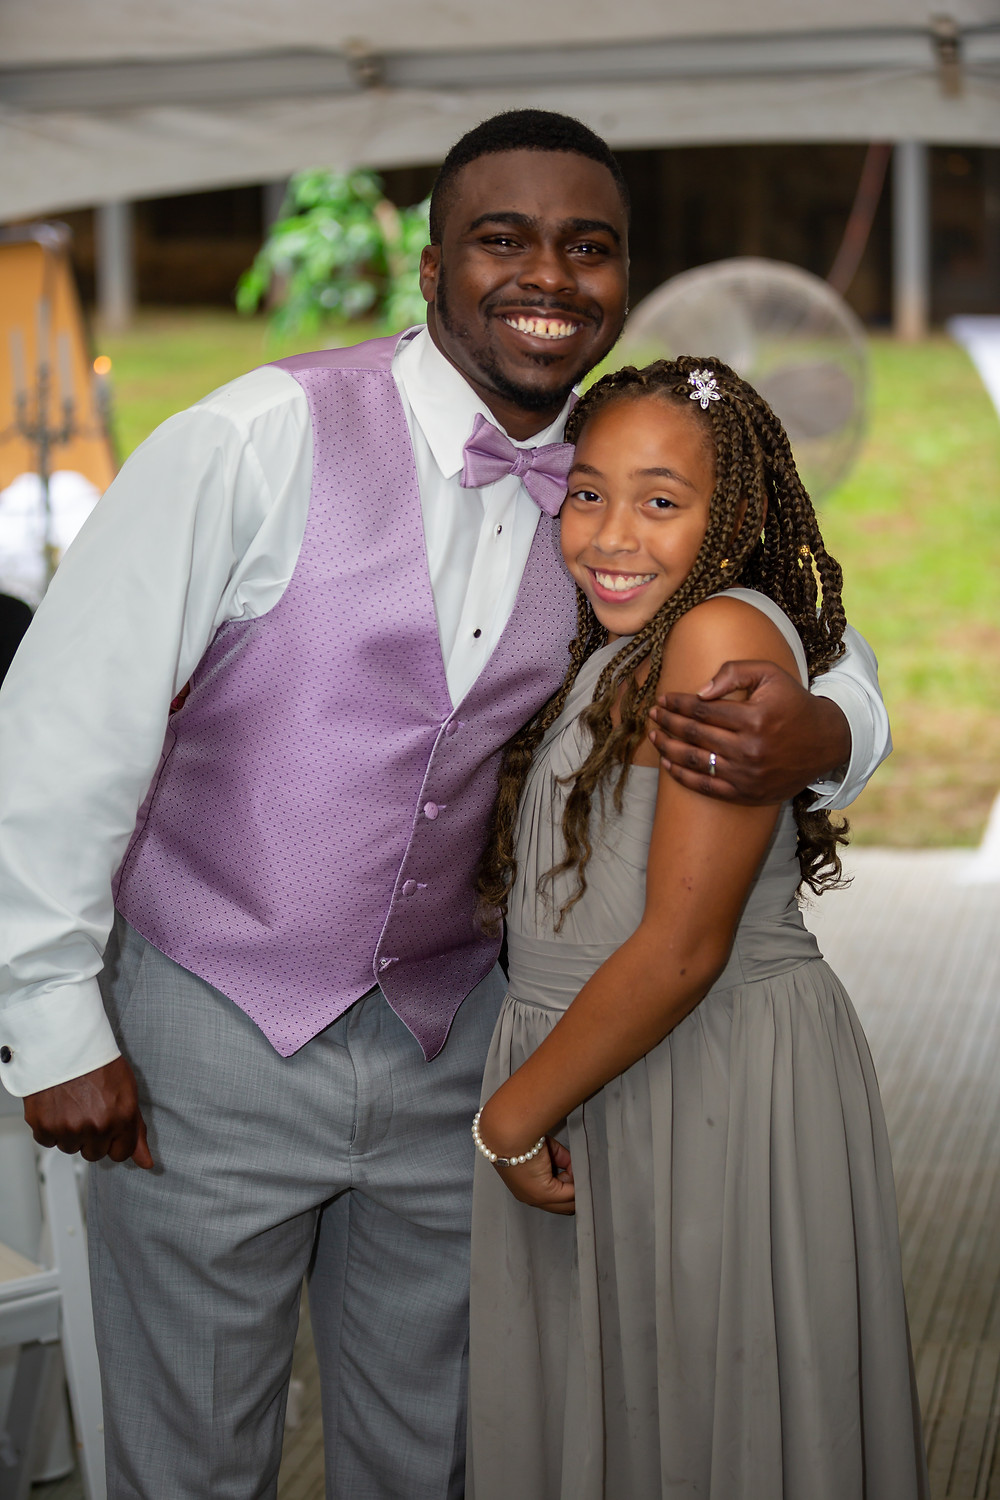 John shares a hug with his flower girl during the wedding reception in Fairfax, Virginia.